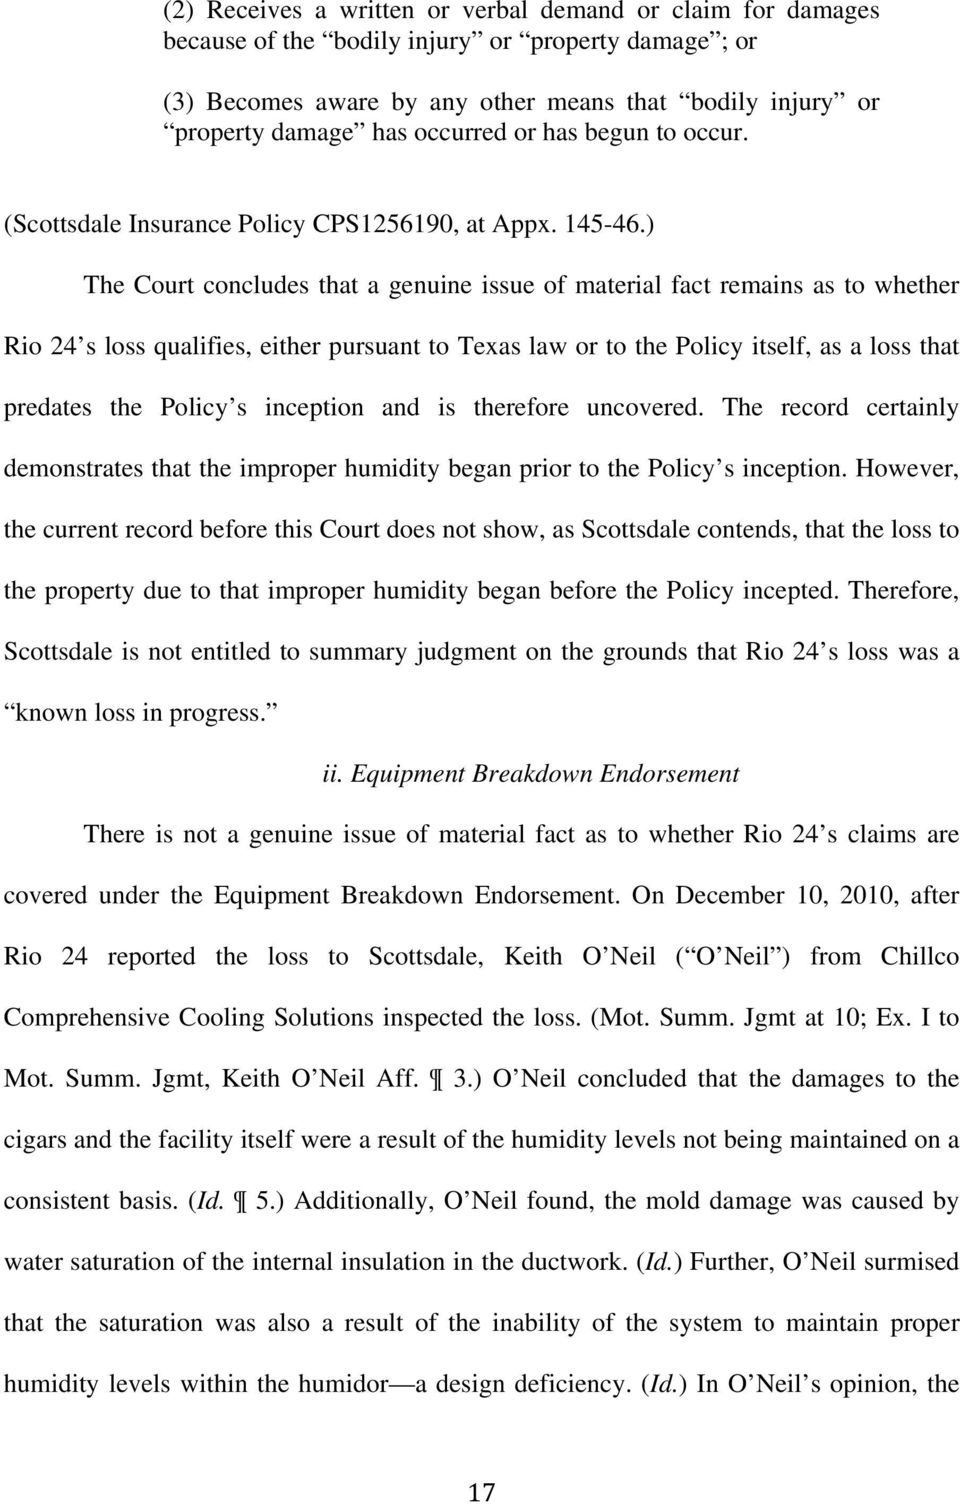 ) The Court concludes that a genuine issue of material fact remains as to whether Rio 24 s loss qualifies, either pursuant to Texas law or to the Policy itself, as a loss that predates the Policy s